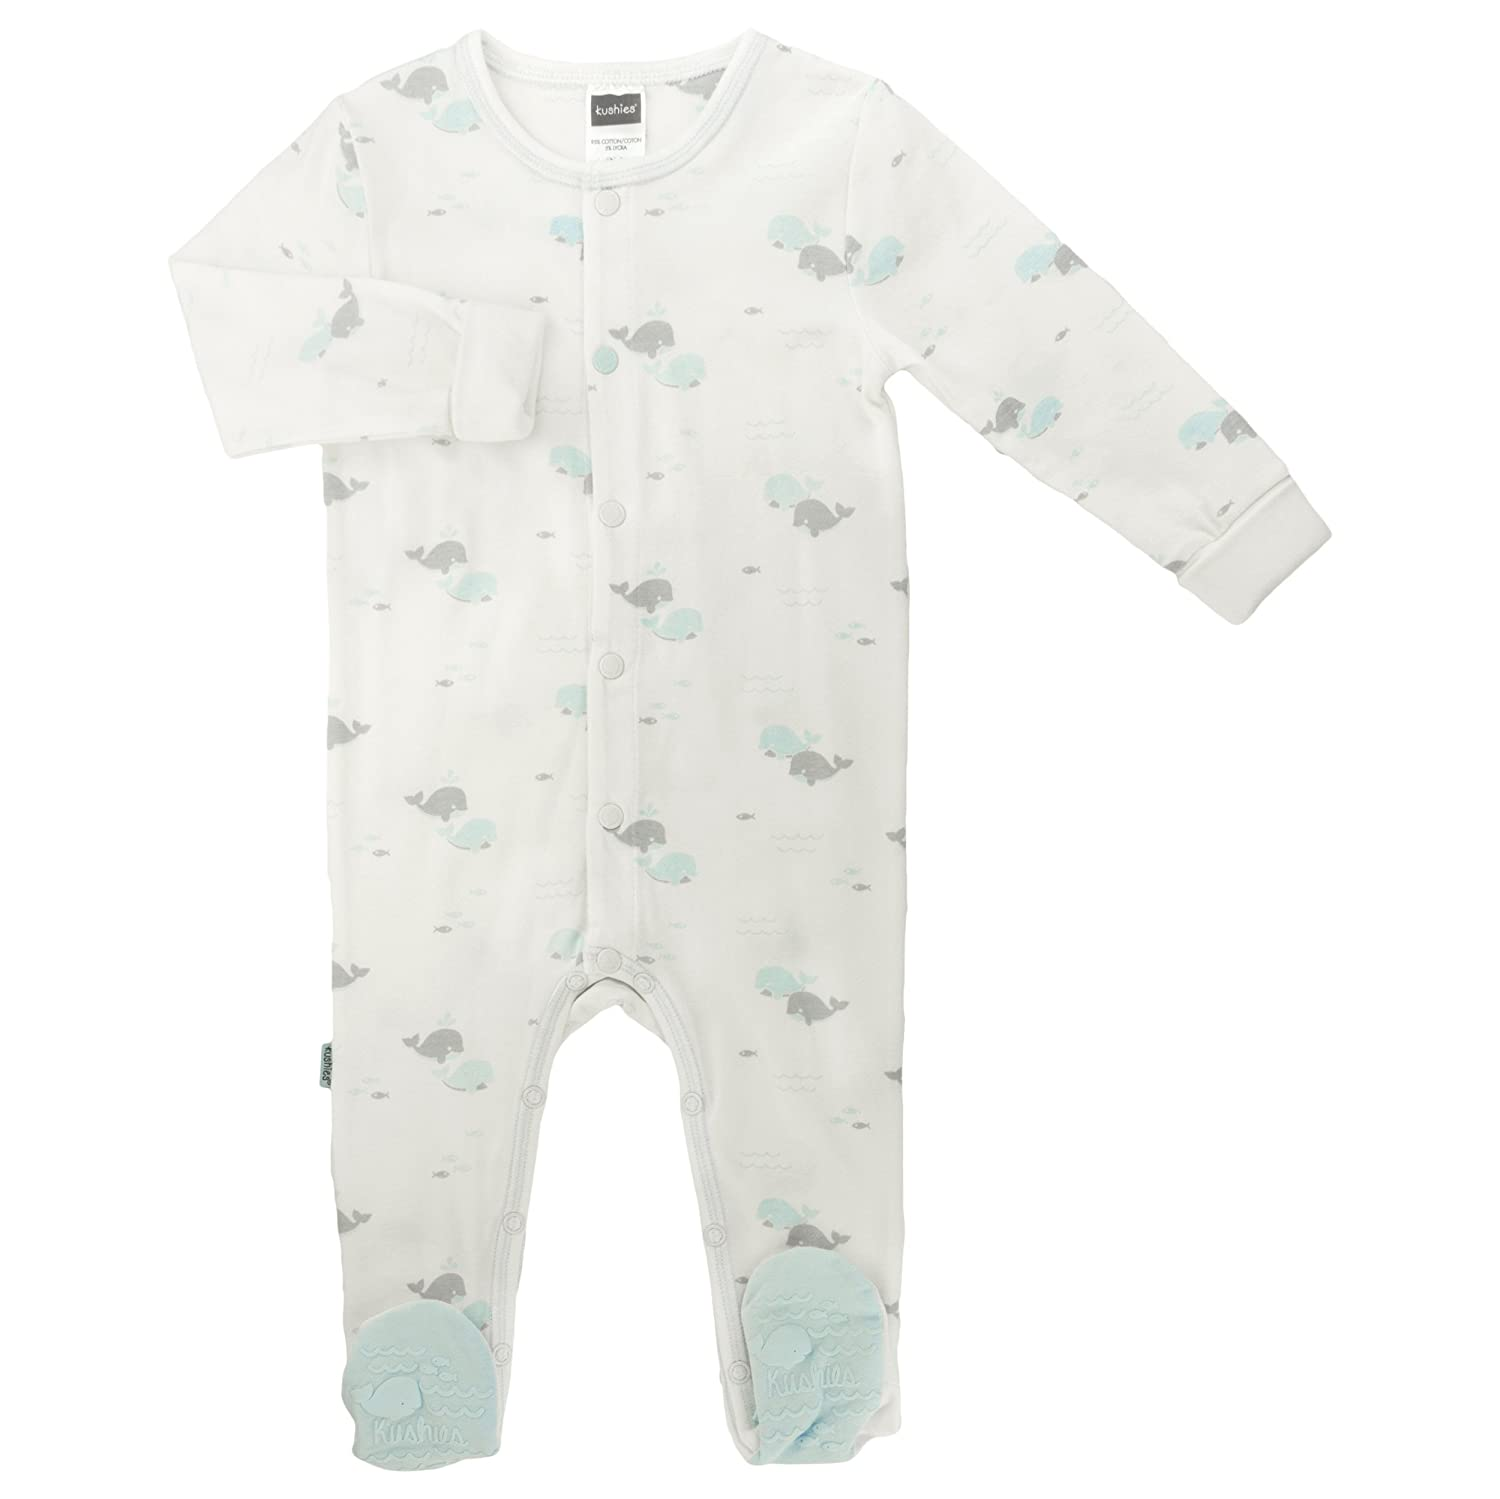 Kushies Baby Boys Front Snap Sleeper, White Print, 6 Months L16060675